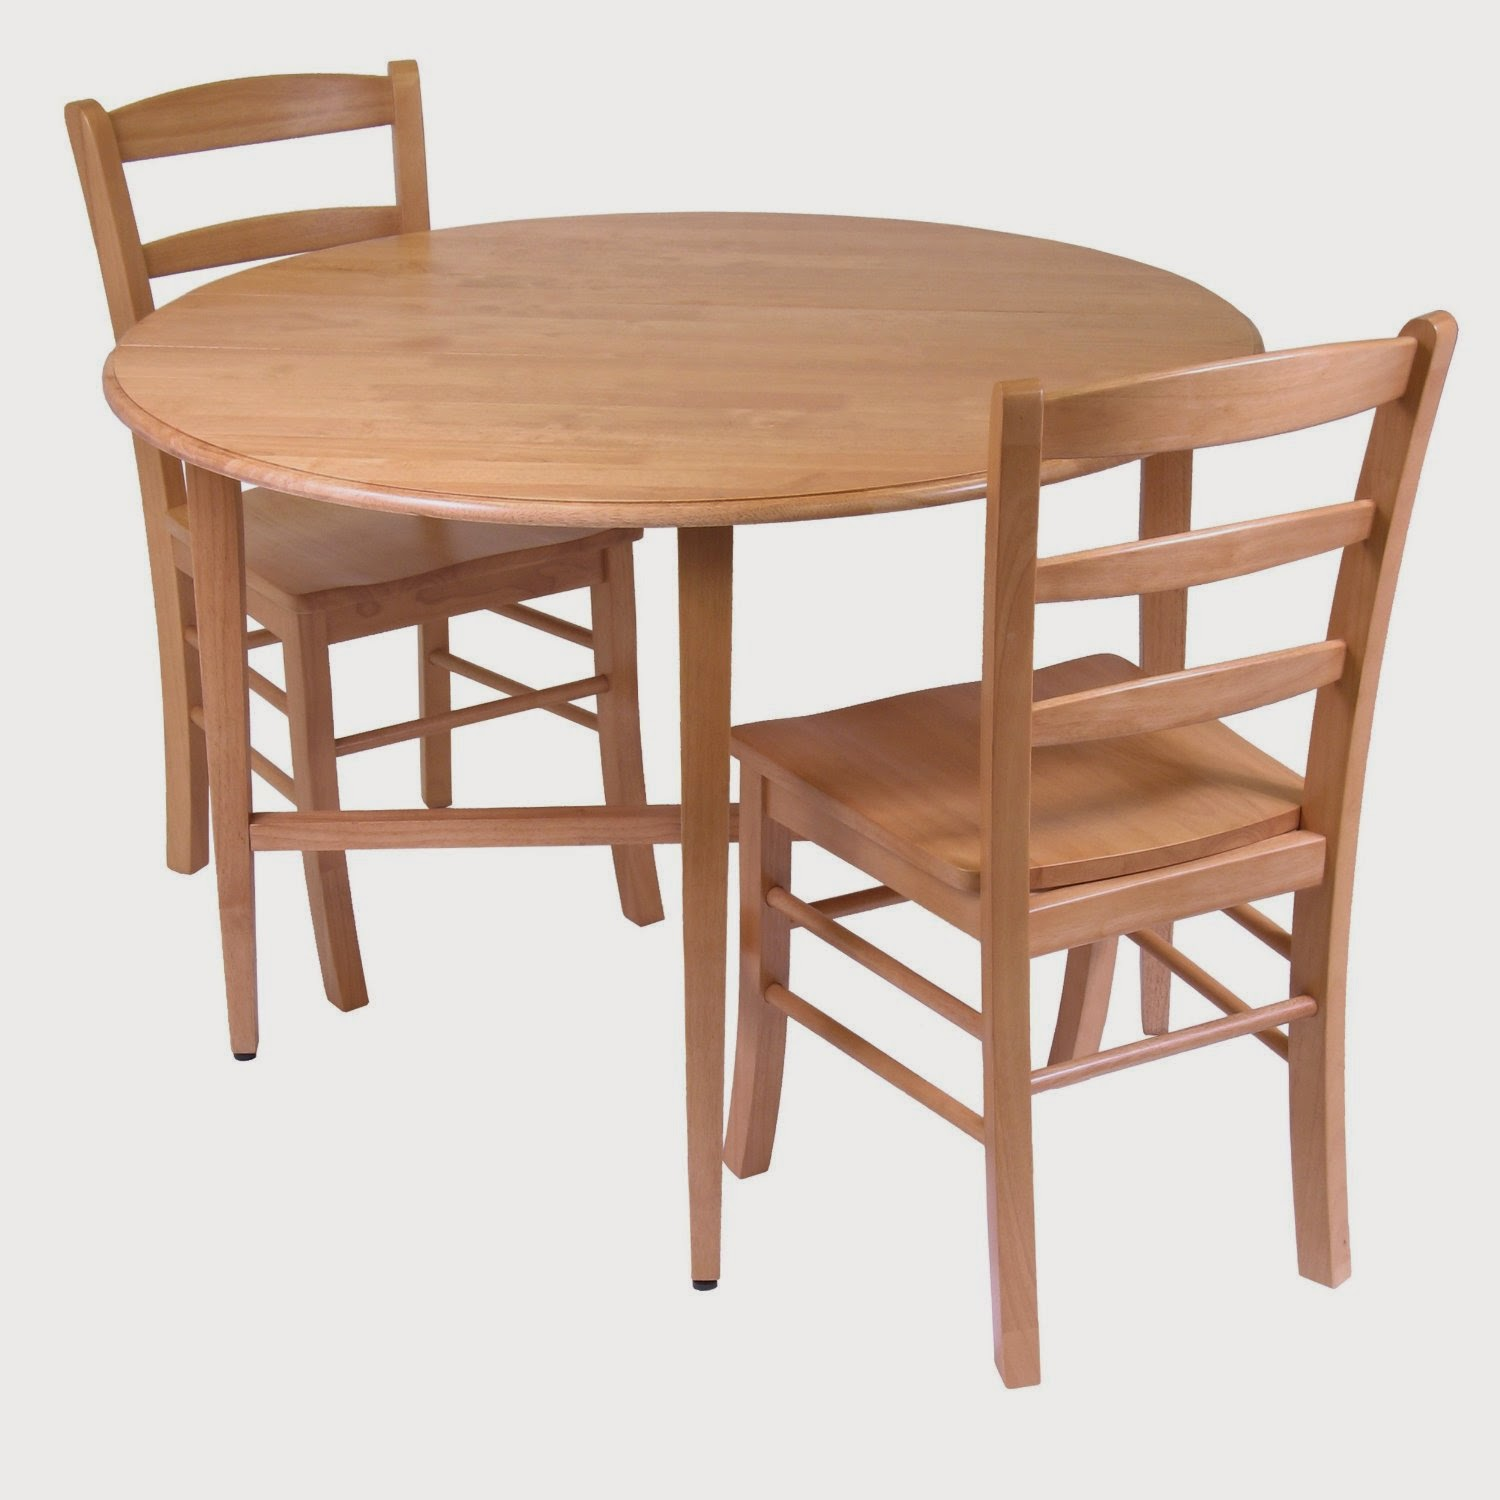 best-round-log-dining-table-with-chic-ikea-wooden-chairs-for-outdoor-dining-room-ikea-dining-sets